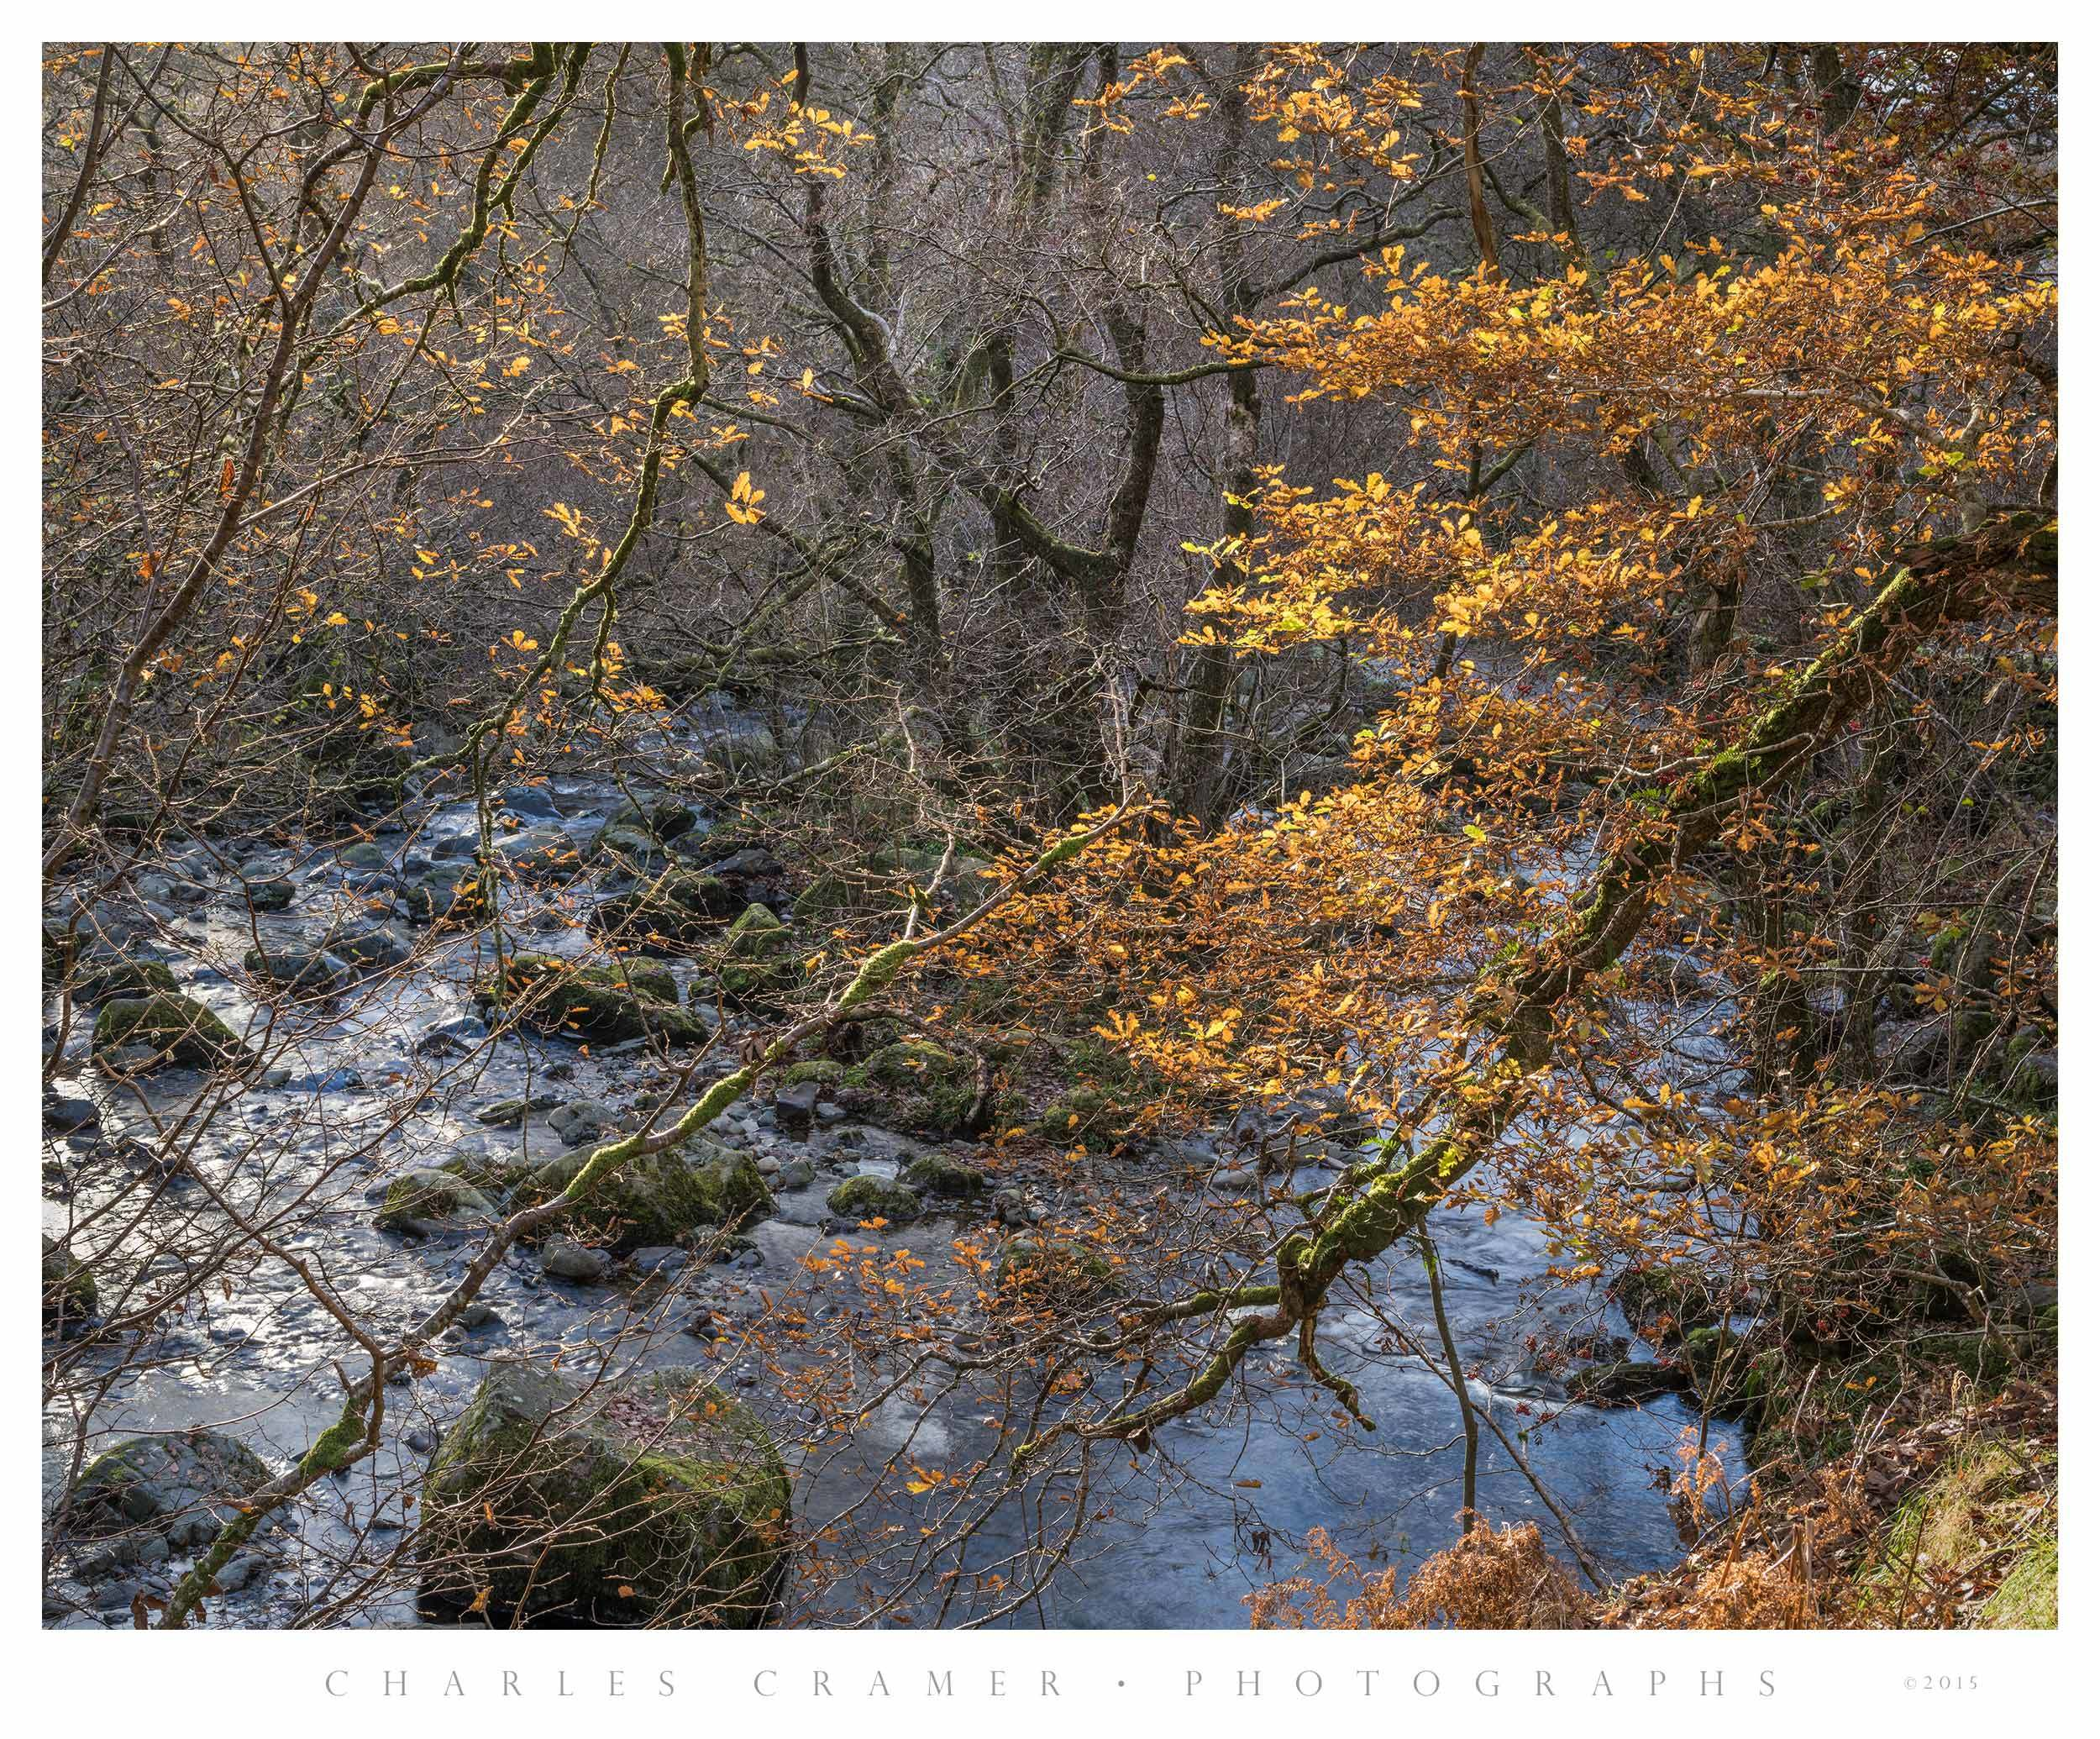 Backlit Branches, Aira Force, Ullswater, England